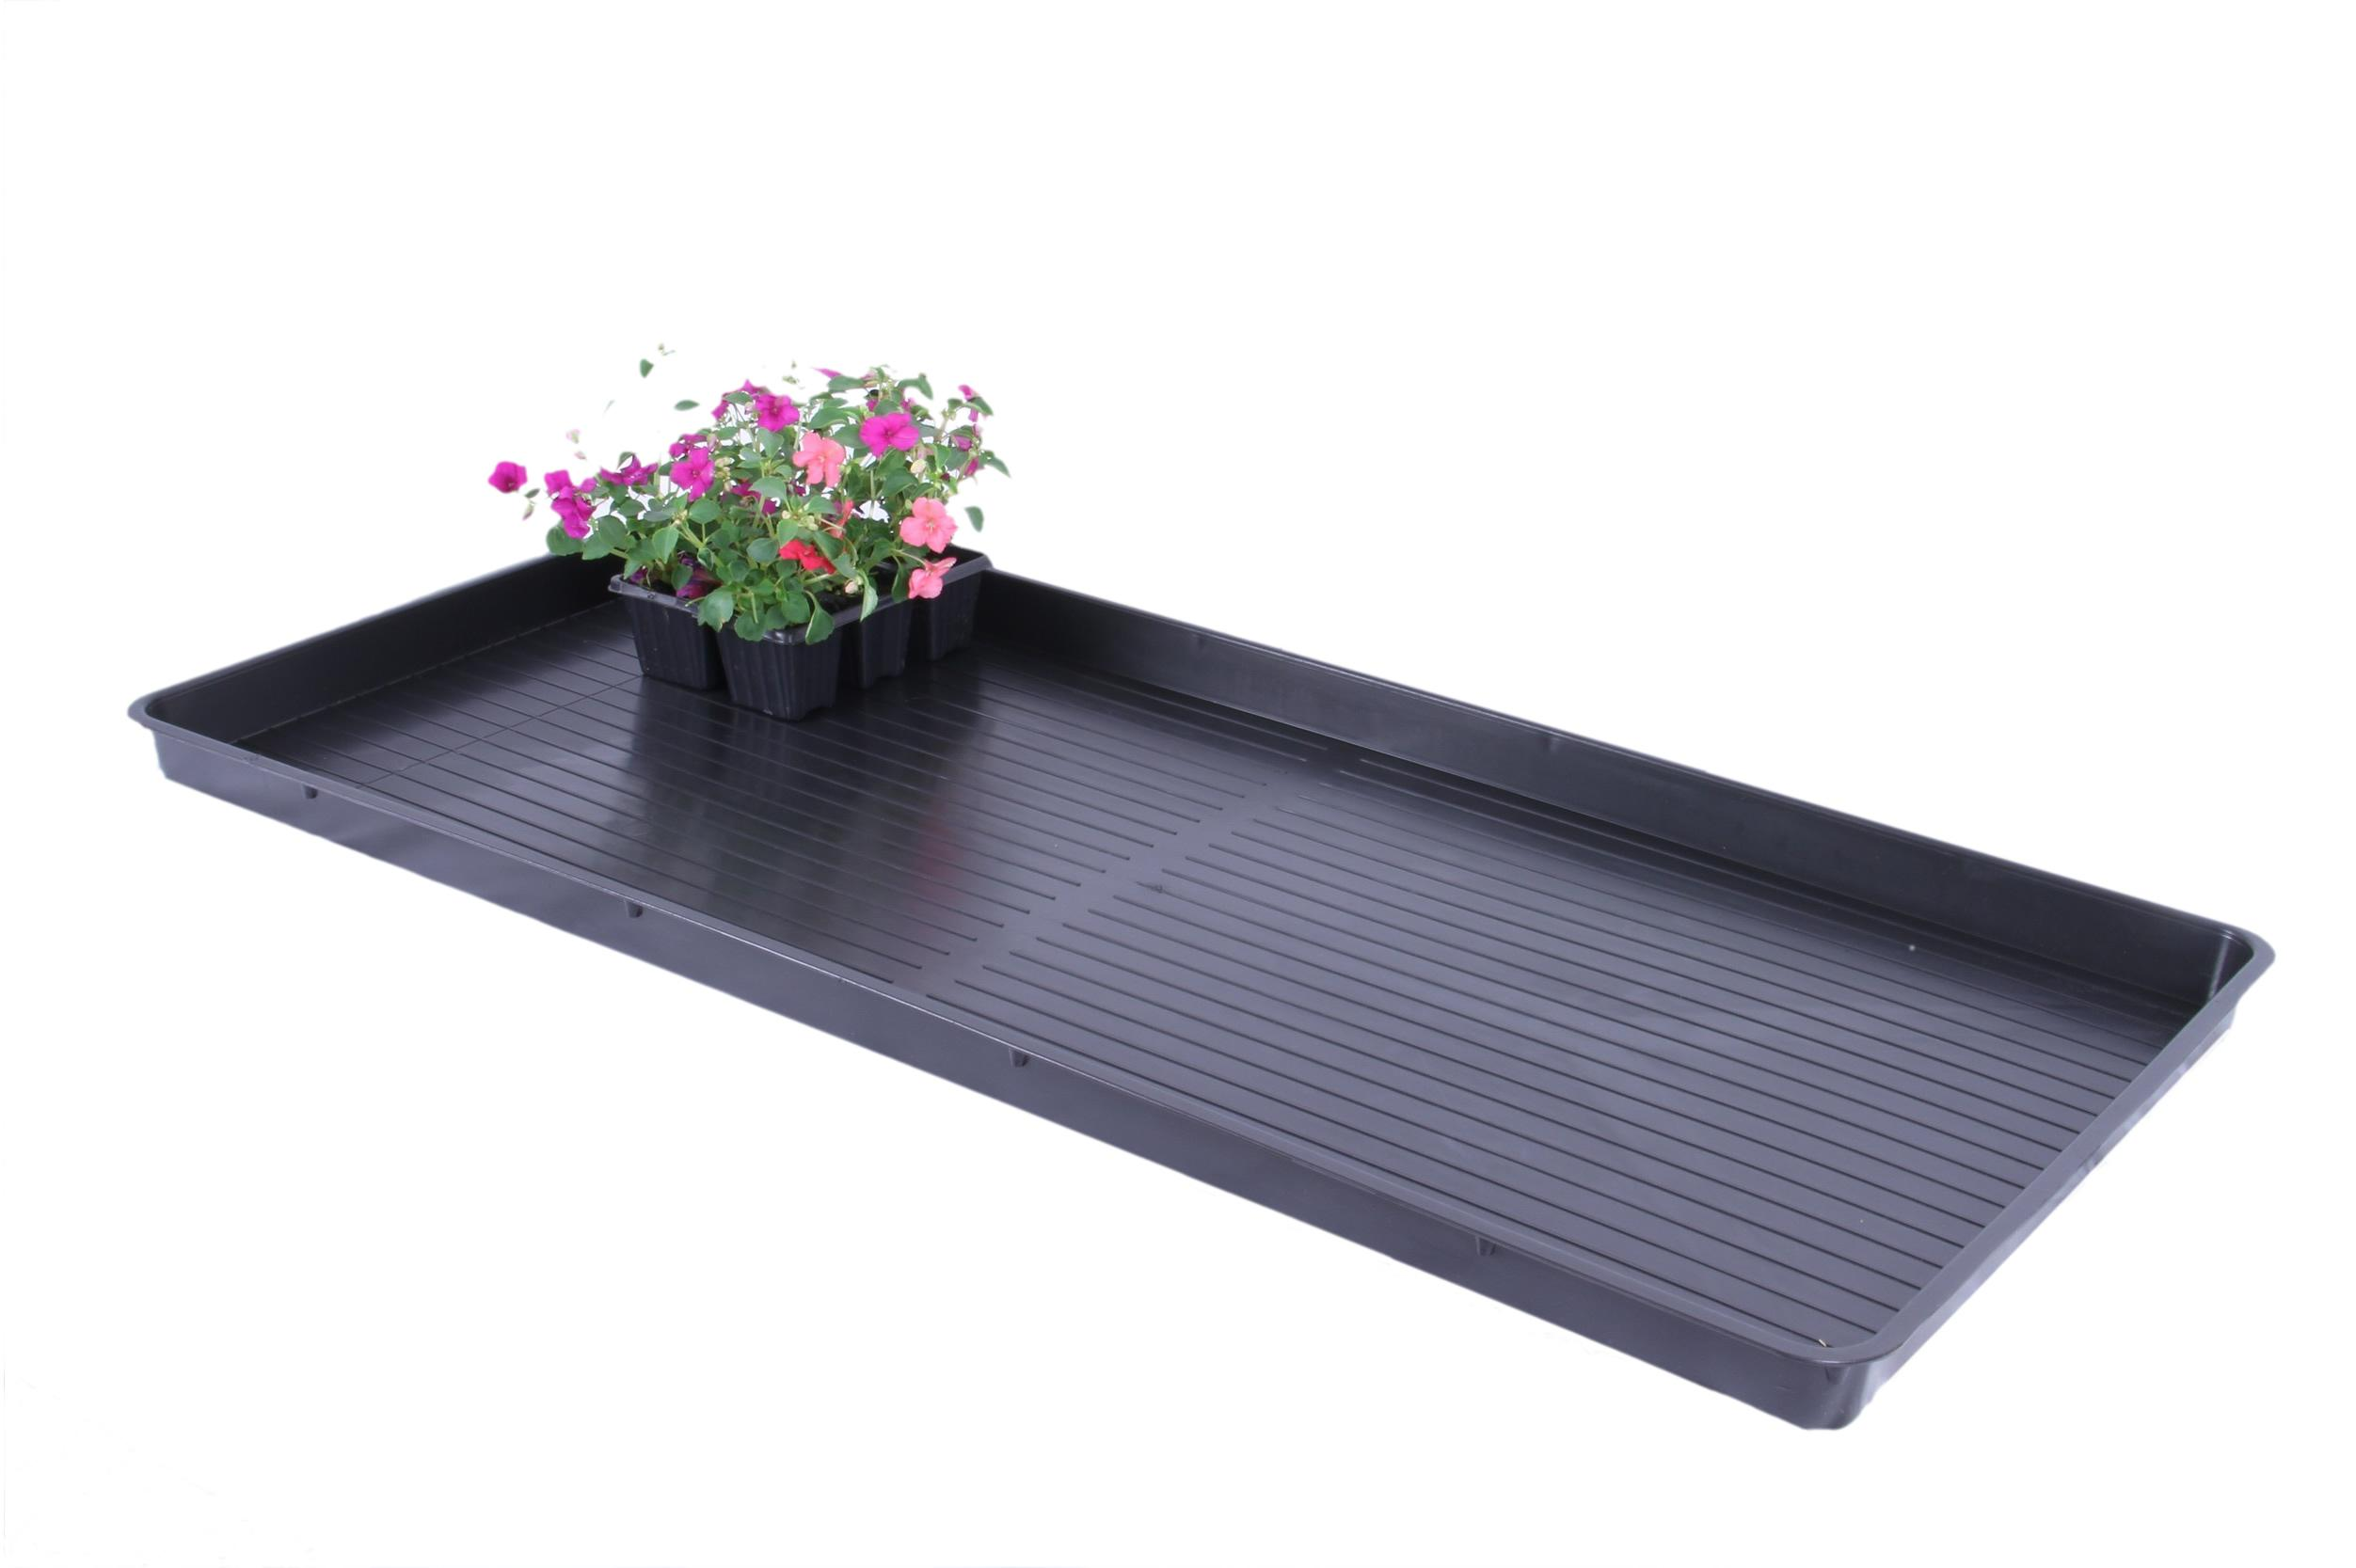 Superieur Garland Pack Of 3 Giant Plus Garden Tray 550mm X 1200mm Black